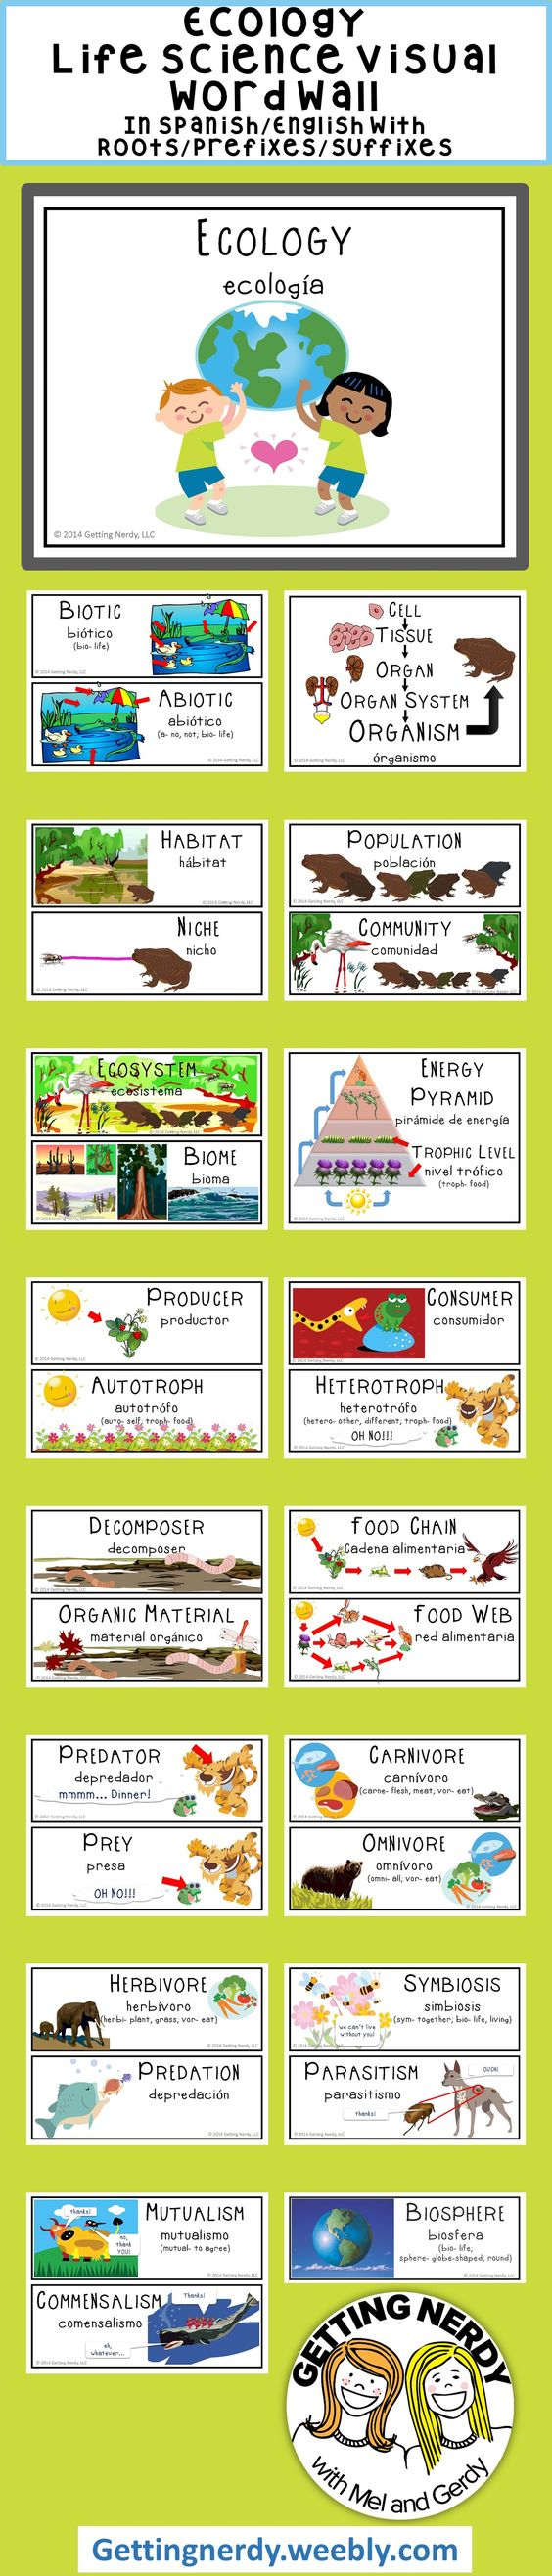 Printables Ecology Vocabulary Worksheet ecology word wall prefixes and suffixes words learning searching for an engaging wordwall how about gettingnerdy with some ecology